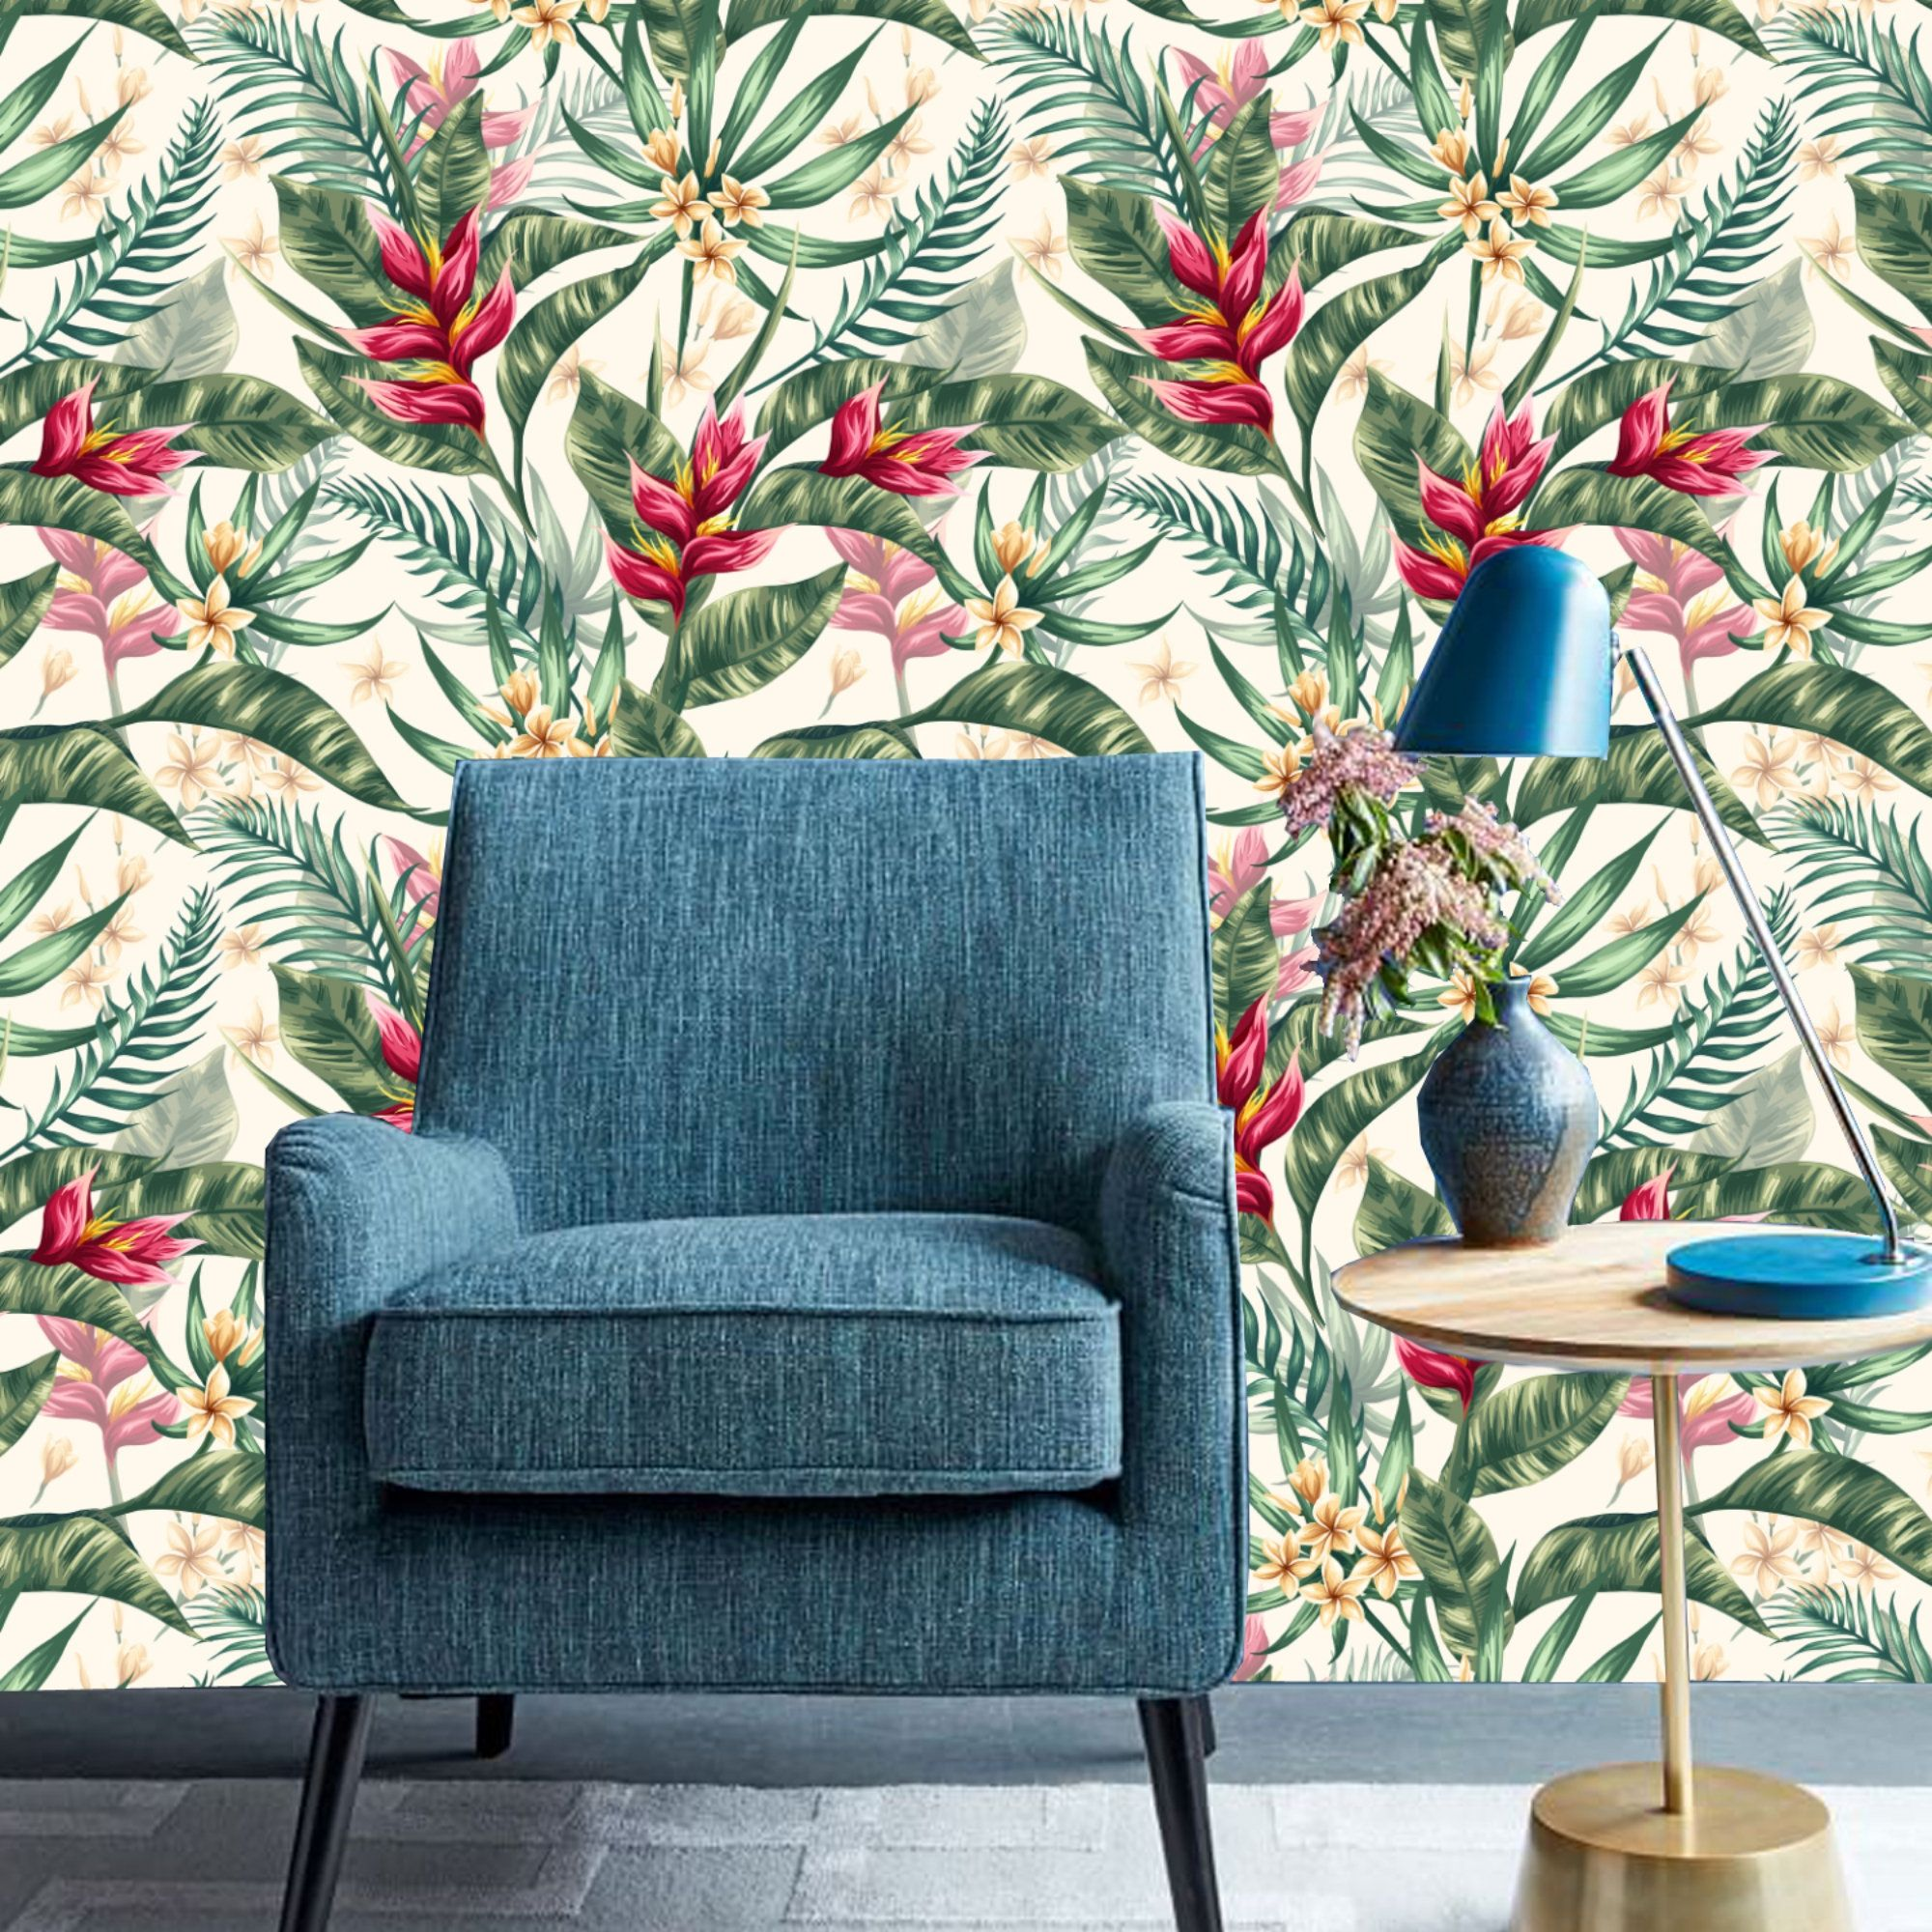 Leaf Tropical Wallpaper Prepasted Peel And Stick Wall Mural Etsy Wallpaper House Design Wall Decor Decor